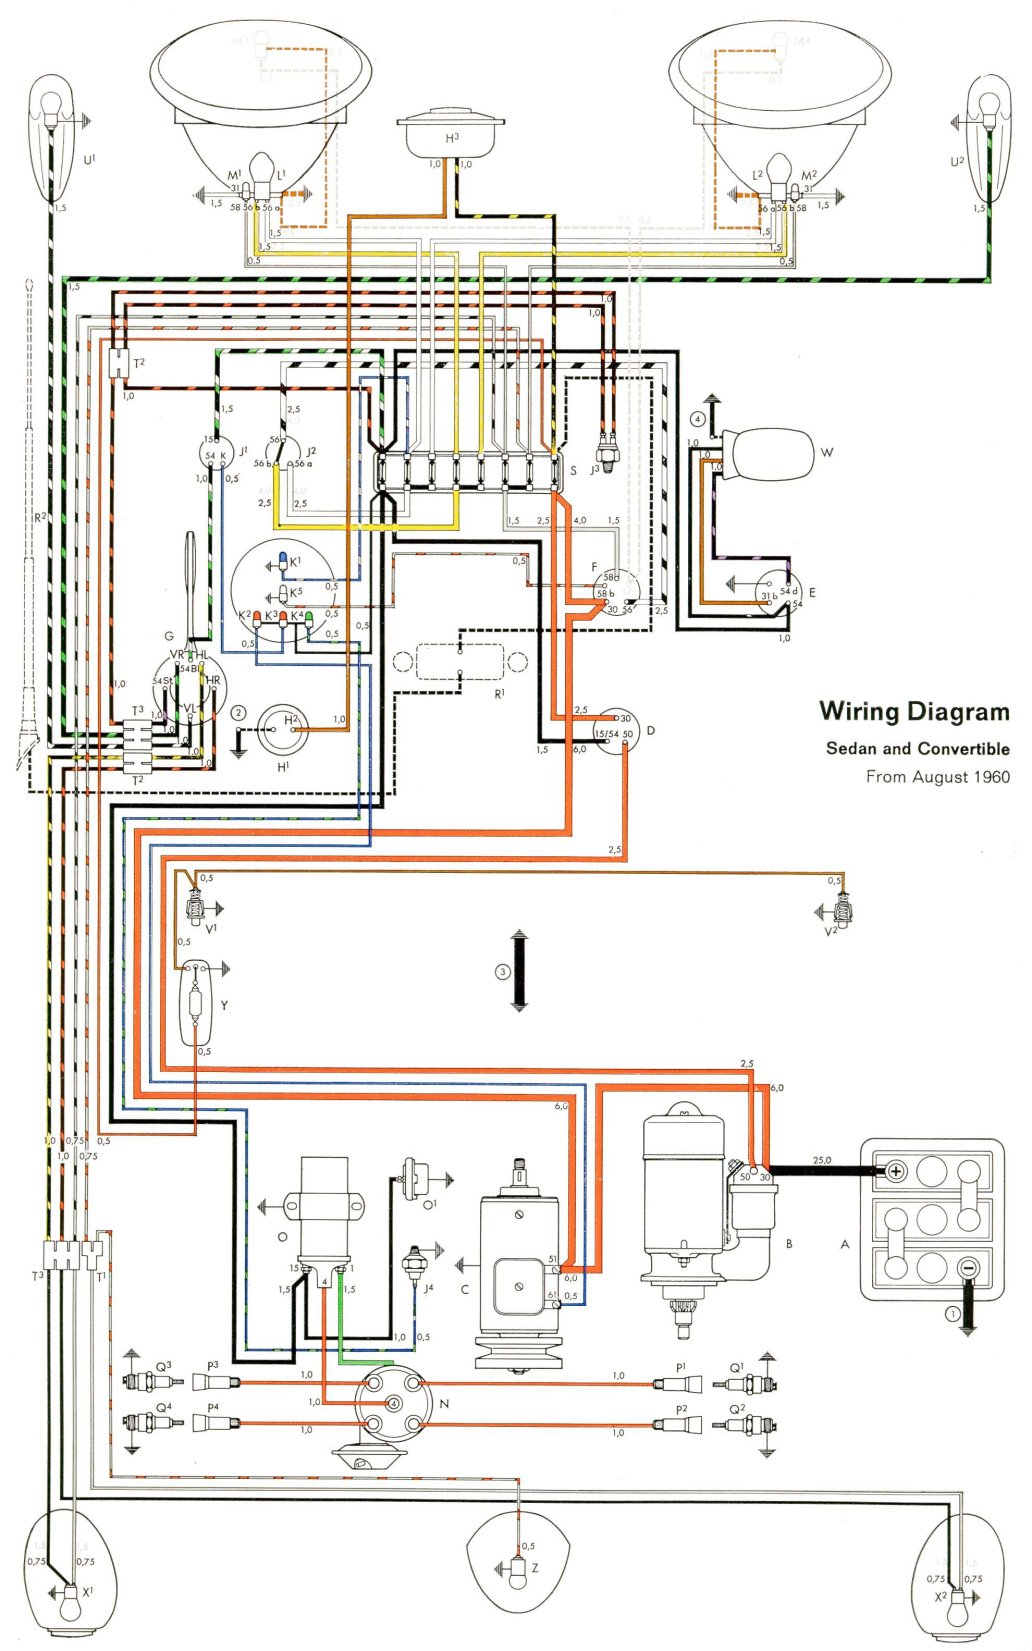 bug_61 1961 beetle wiring diagram thegoldenbug com vw bug wiring diagram at webbmarketing.co